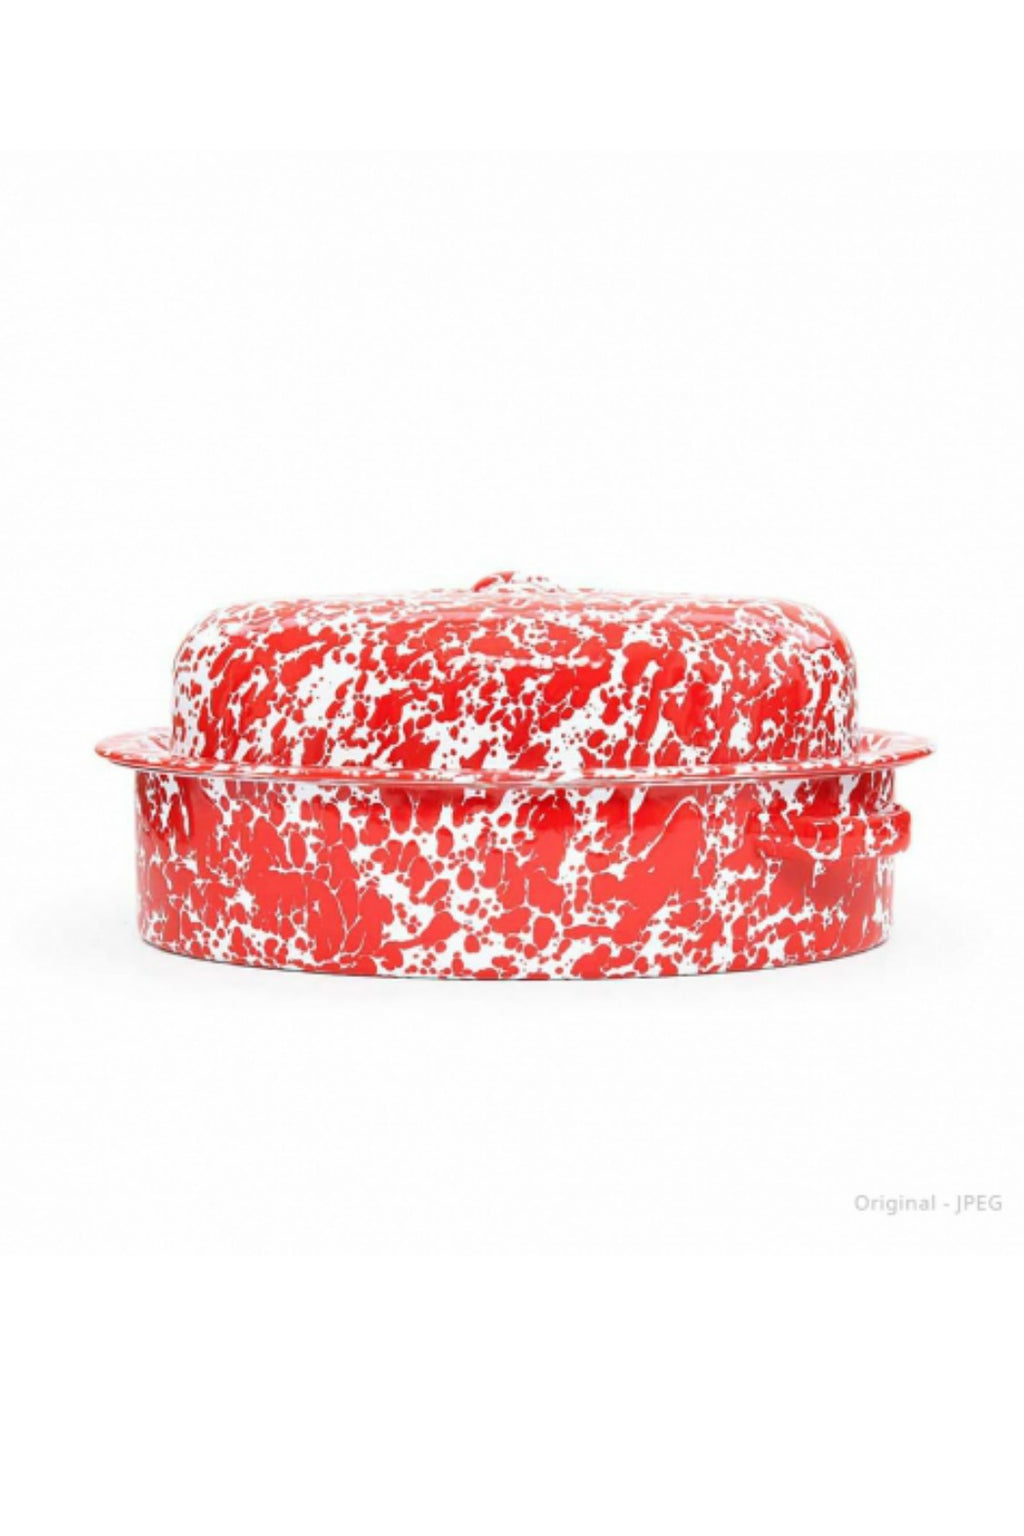 Crow Canyon Home Large Covered Oval Roaster - Red Splatter